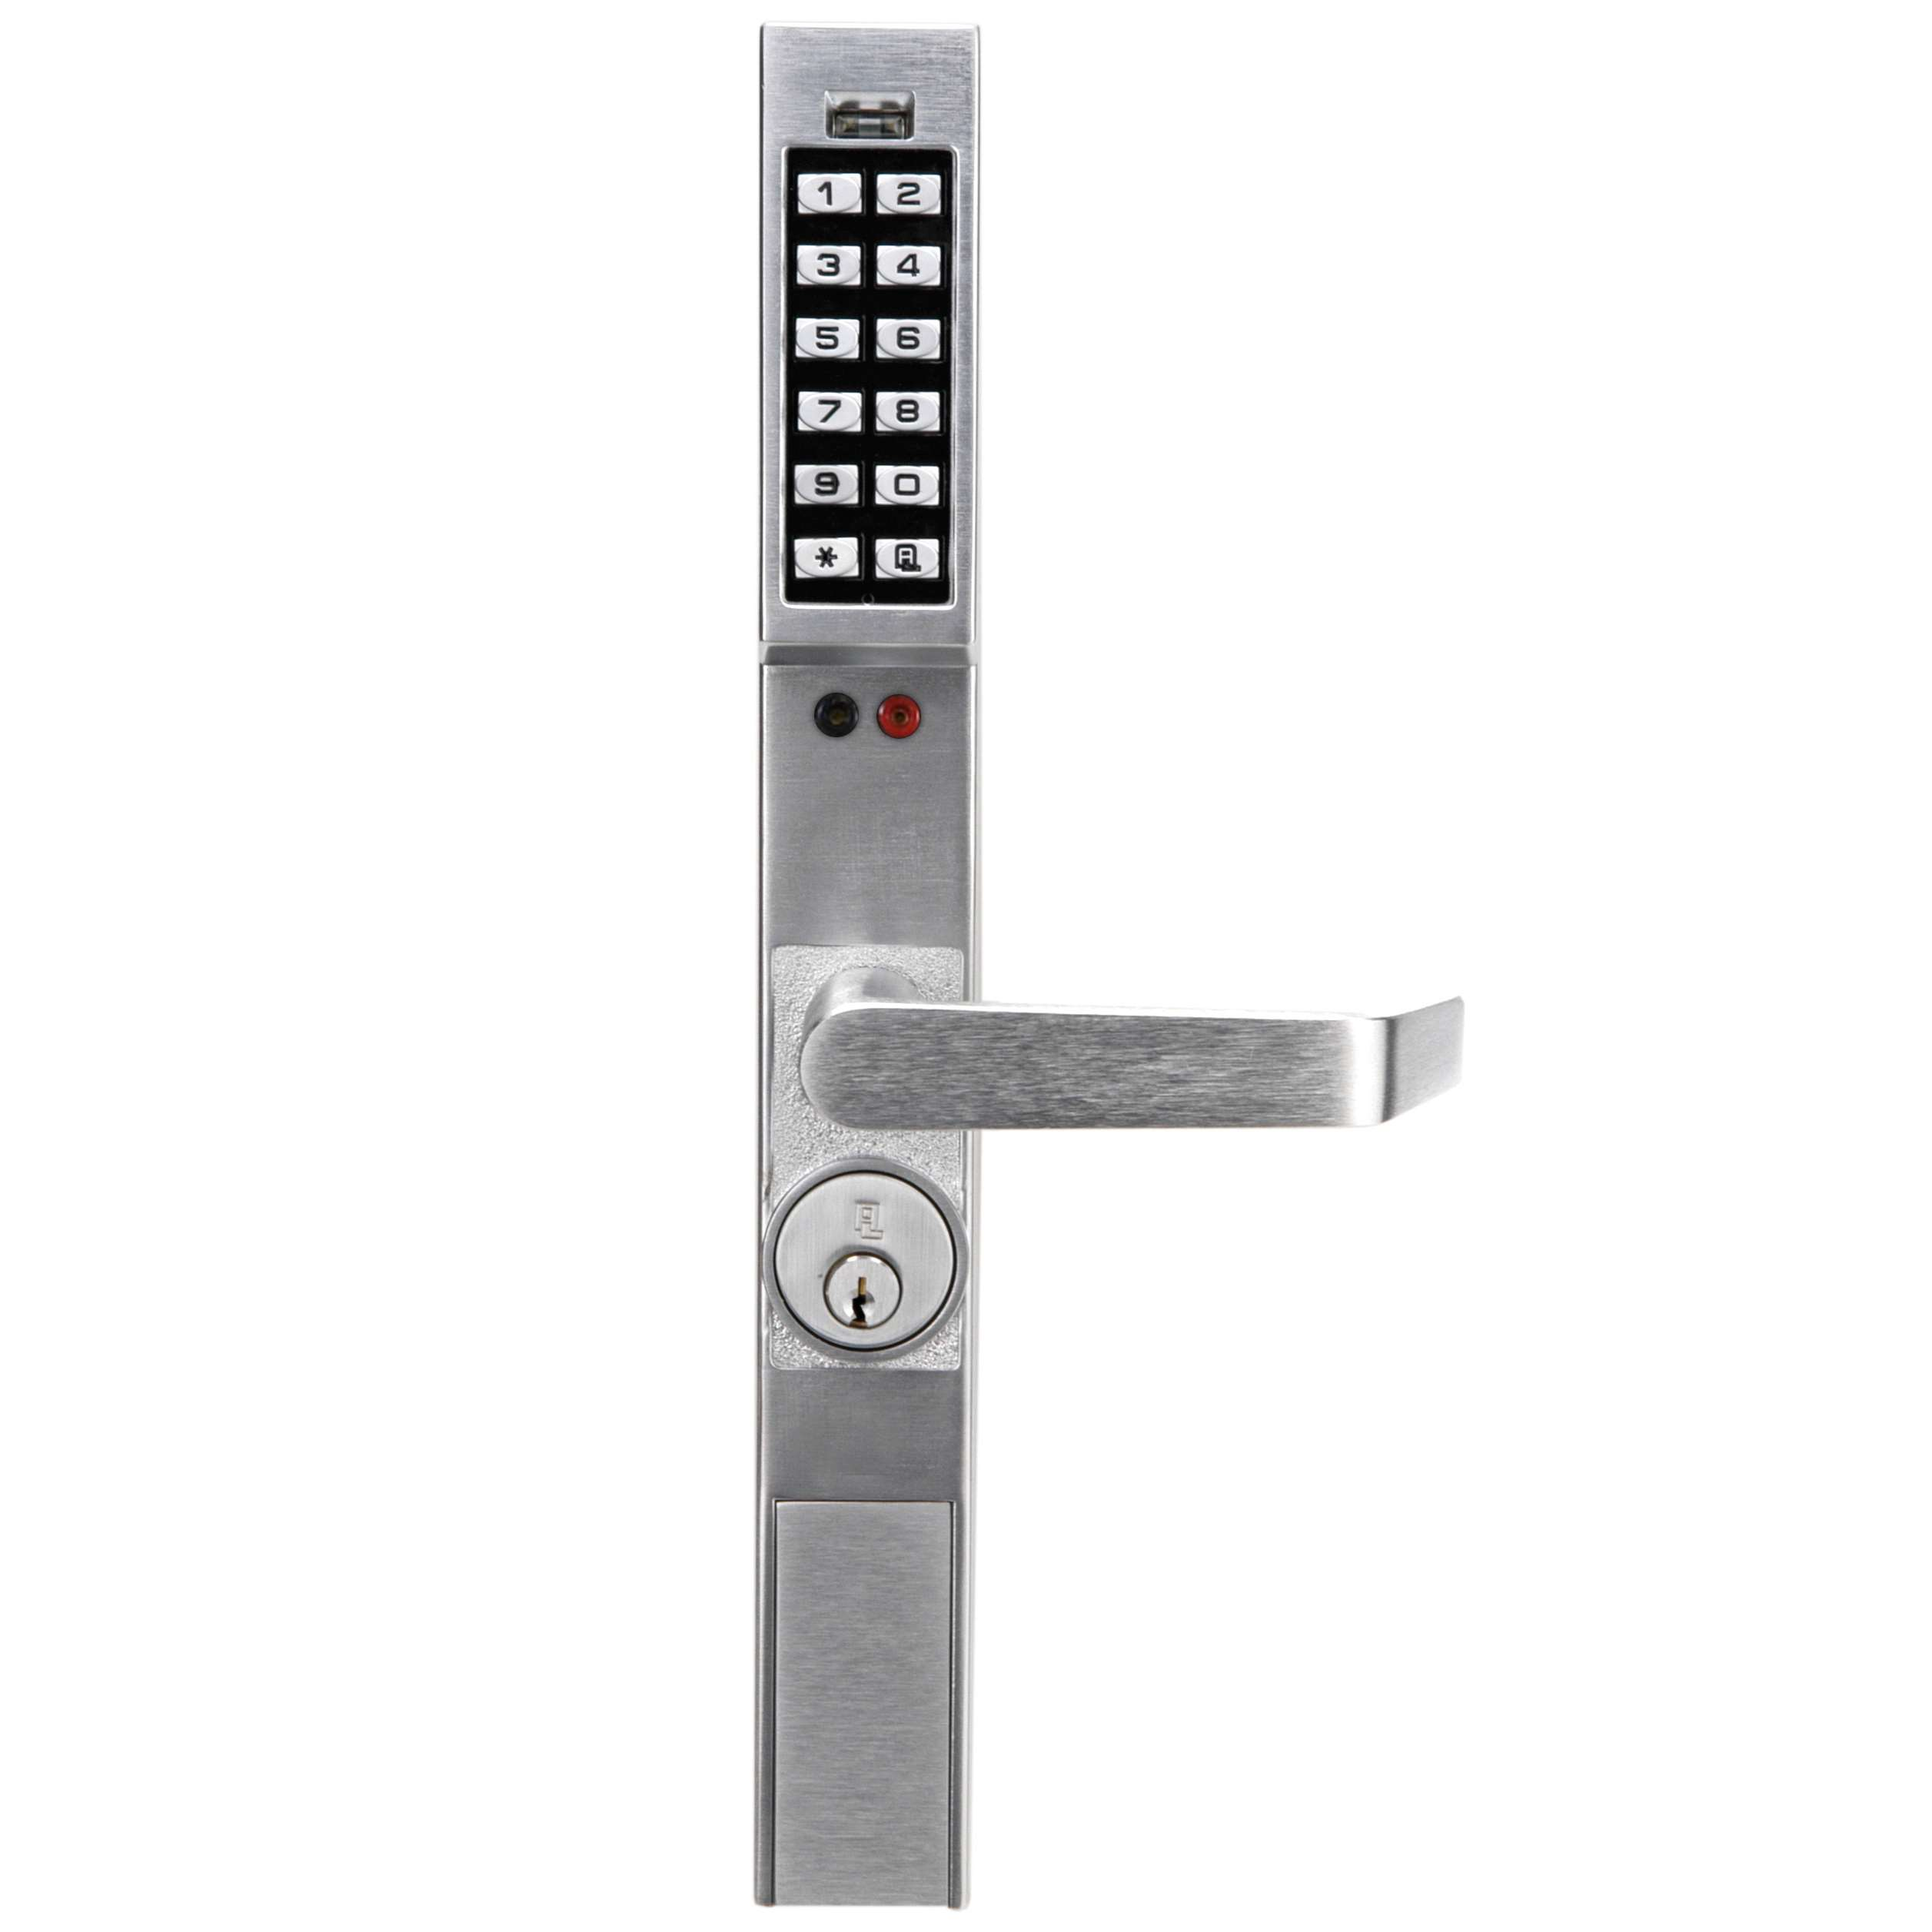 Trilogy DL1300 Narrow Stile Keypad Lock